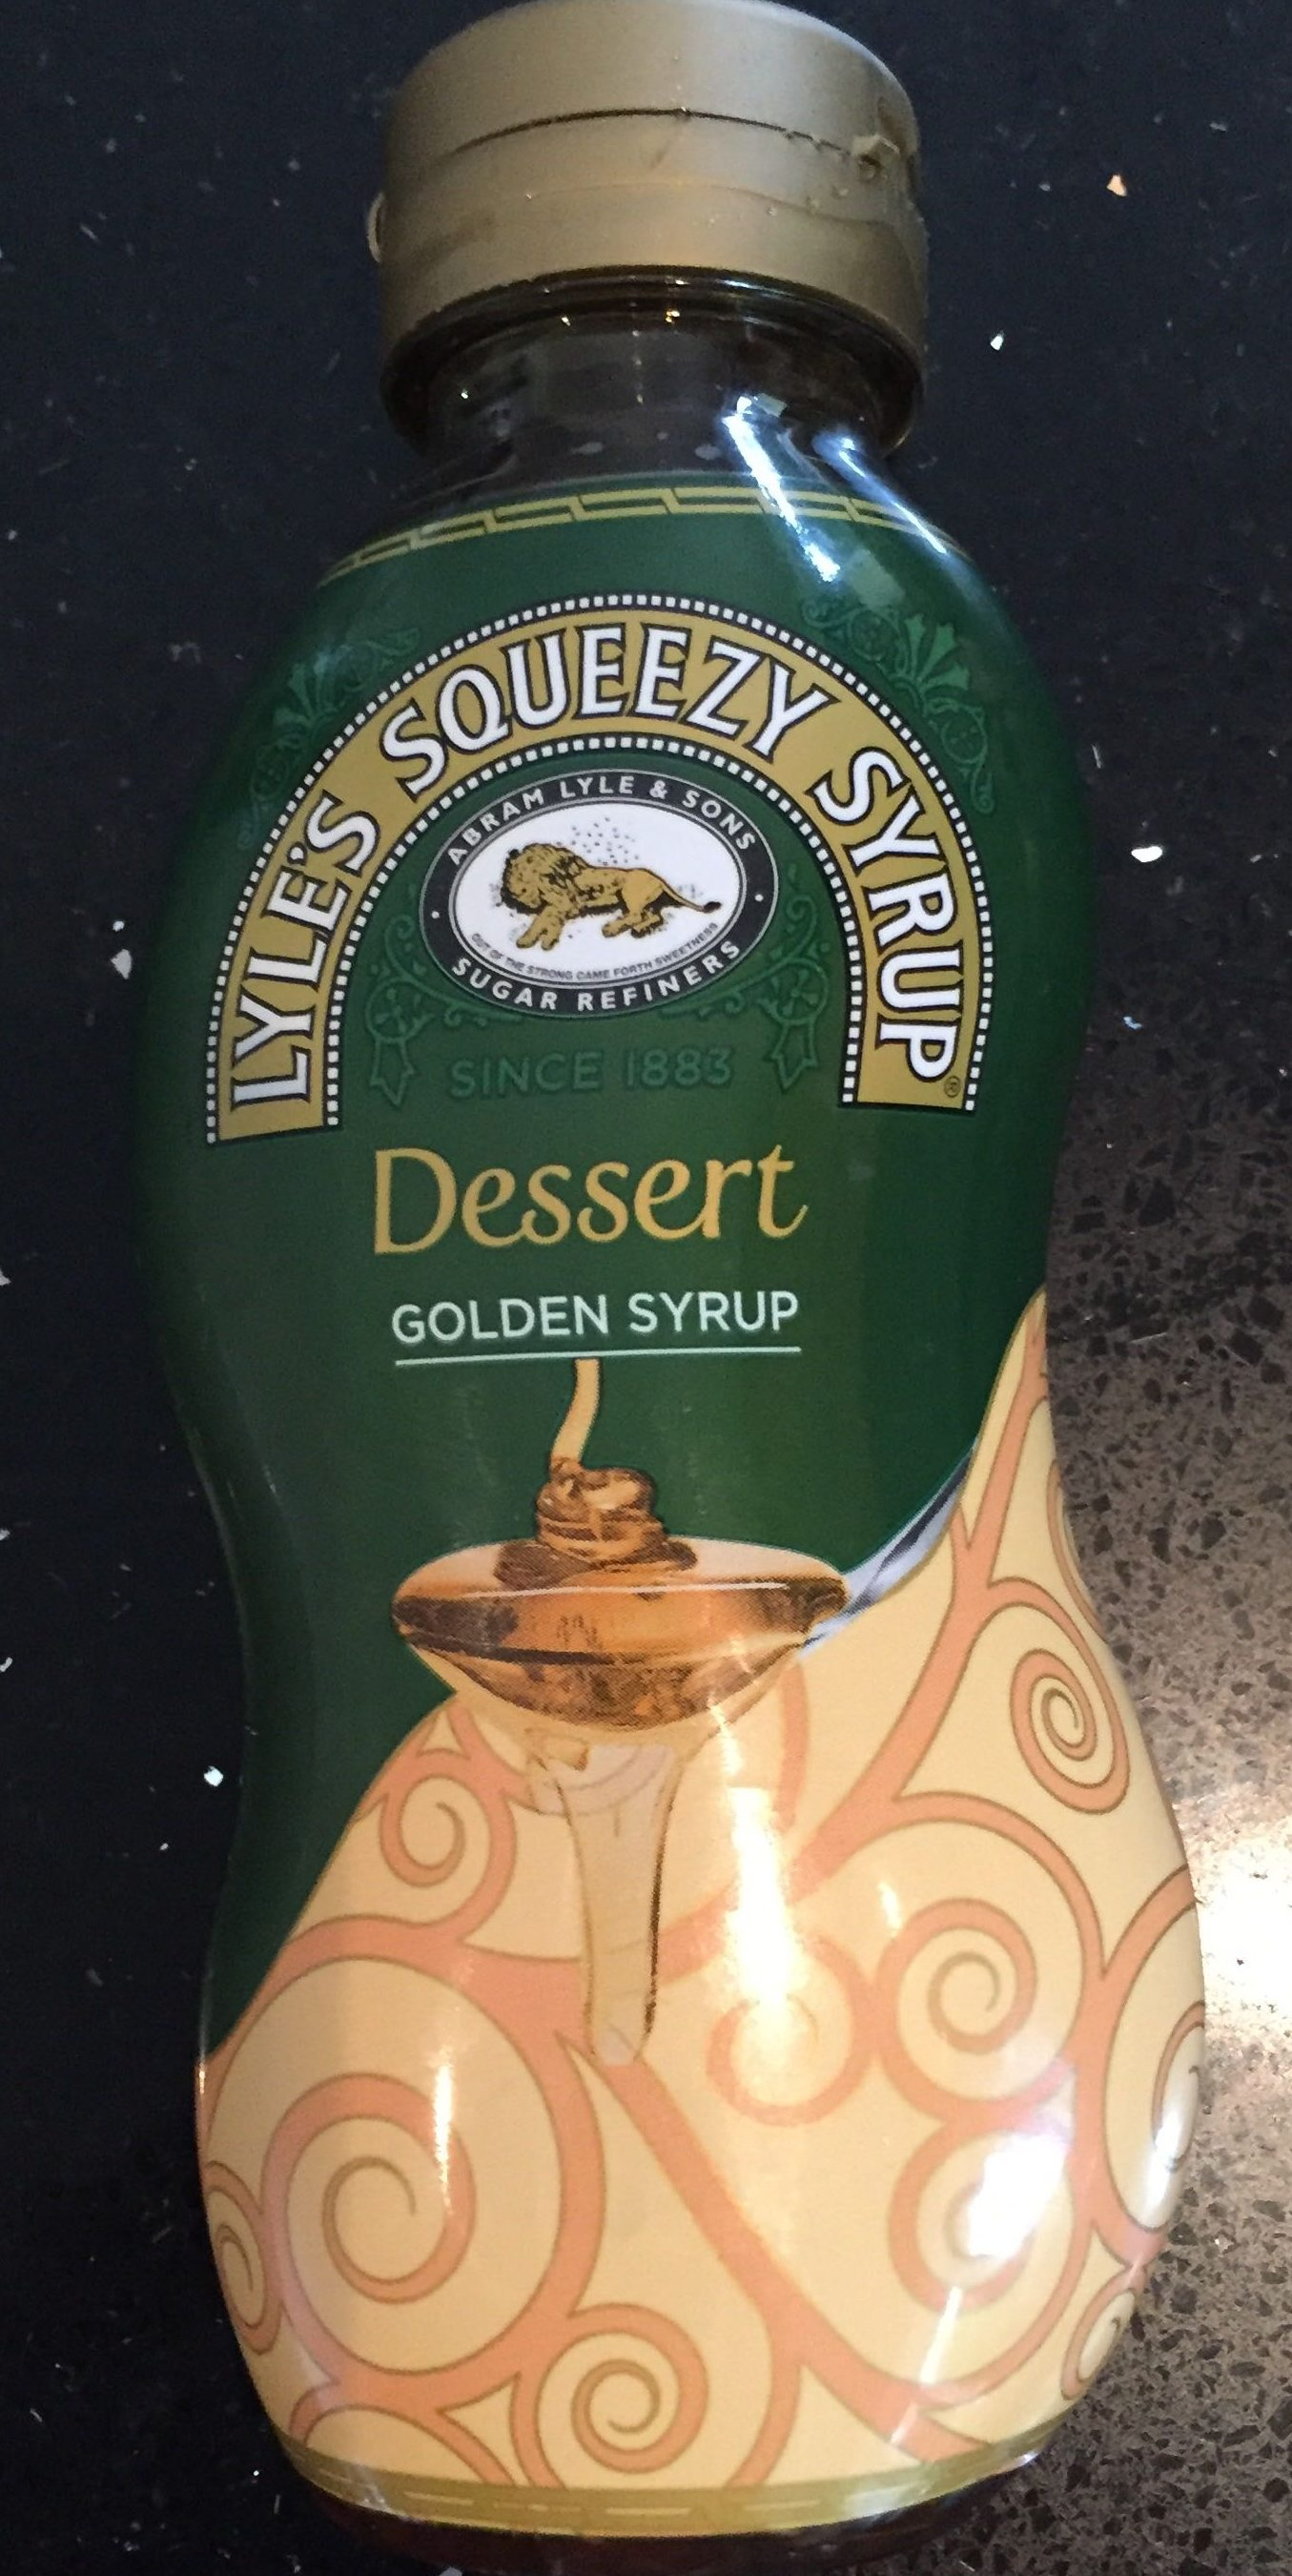 Dessert Golden Syrup - Product - en